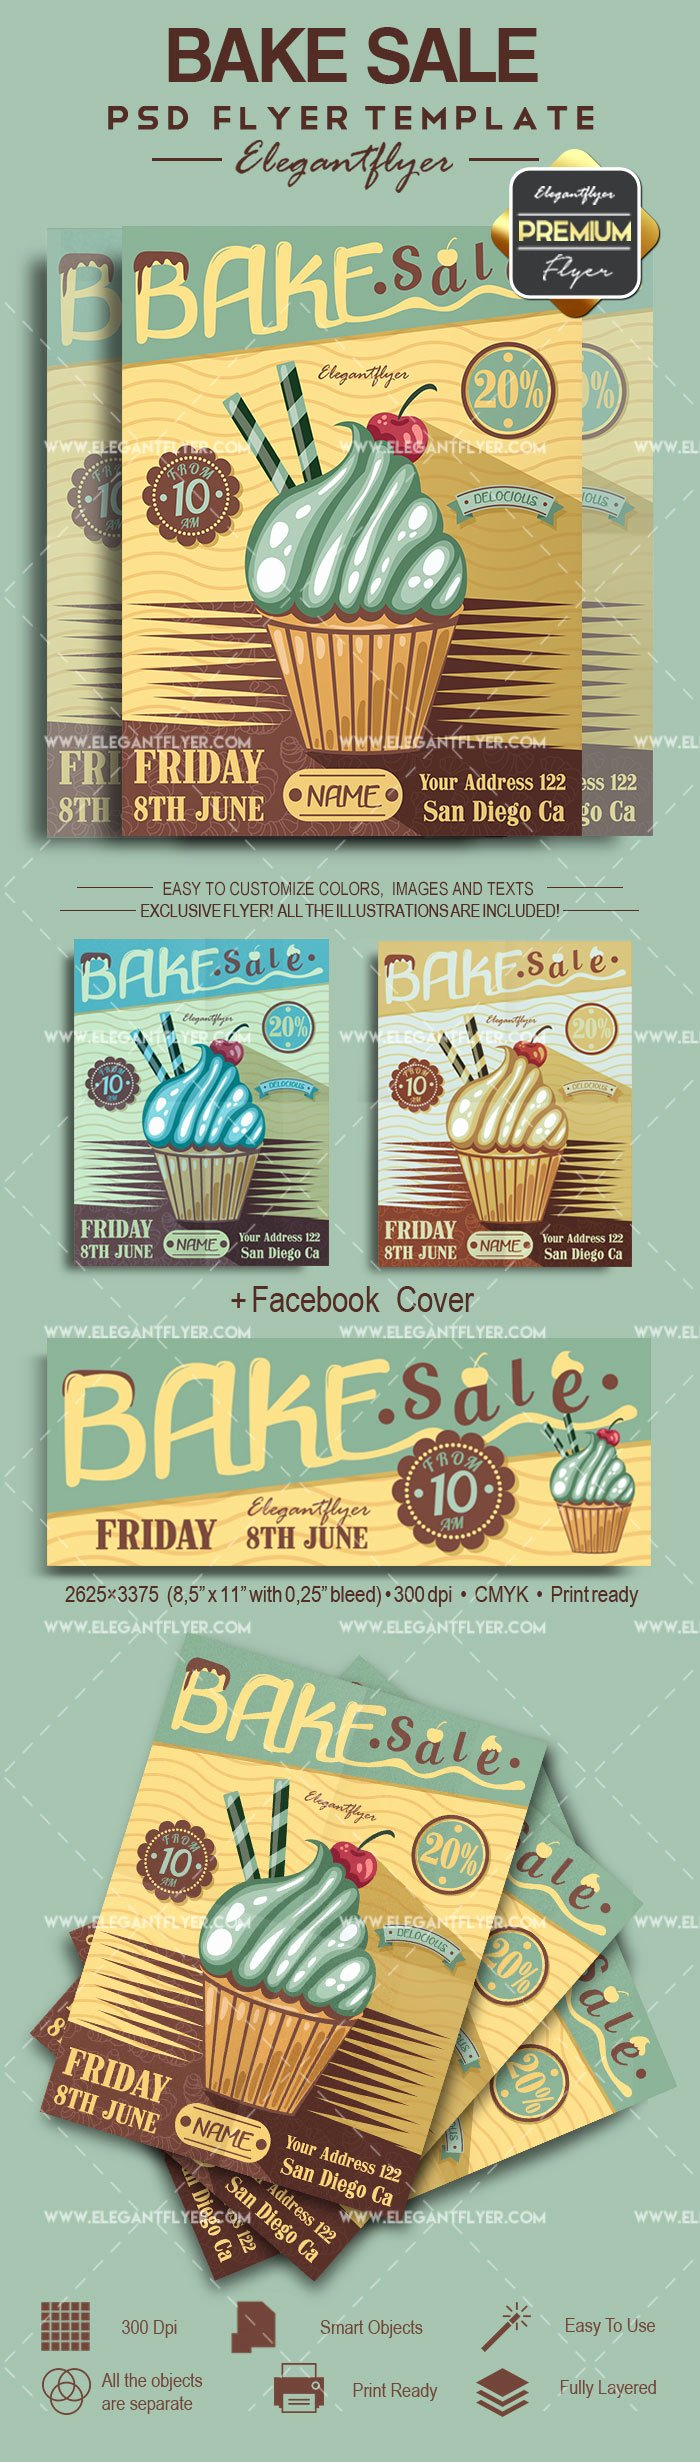 Bake Sale Flyer Template Awesome Bake Sale Psd Poster – by Elegantflyer